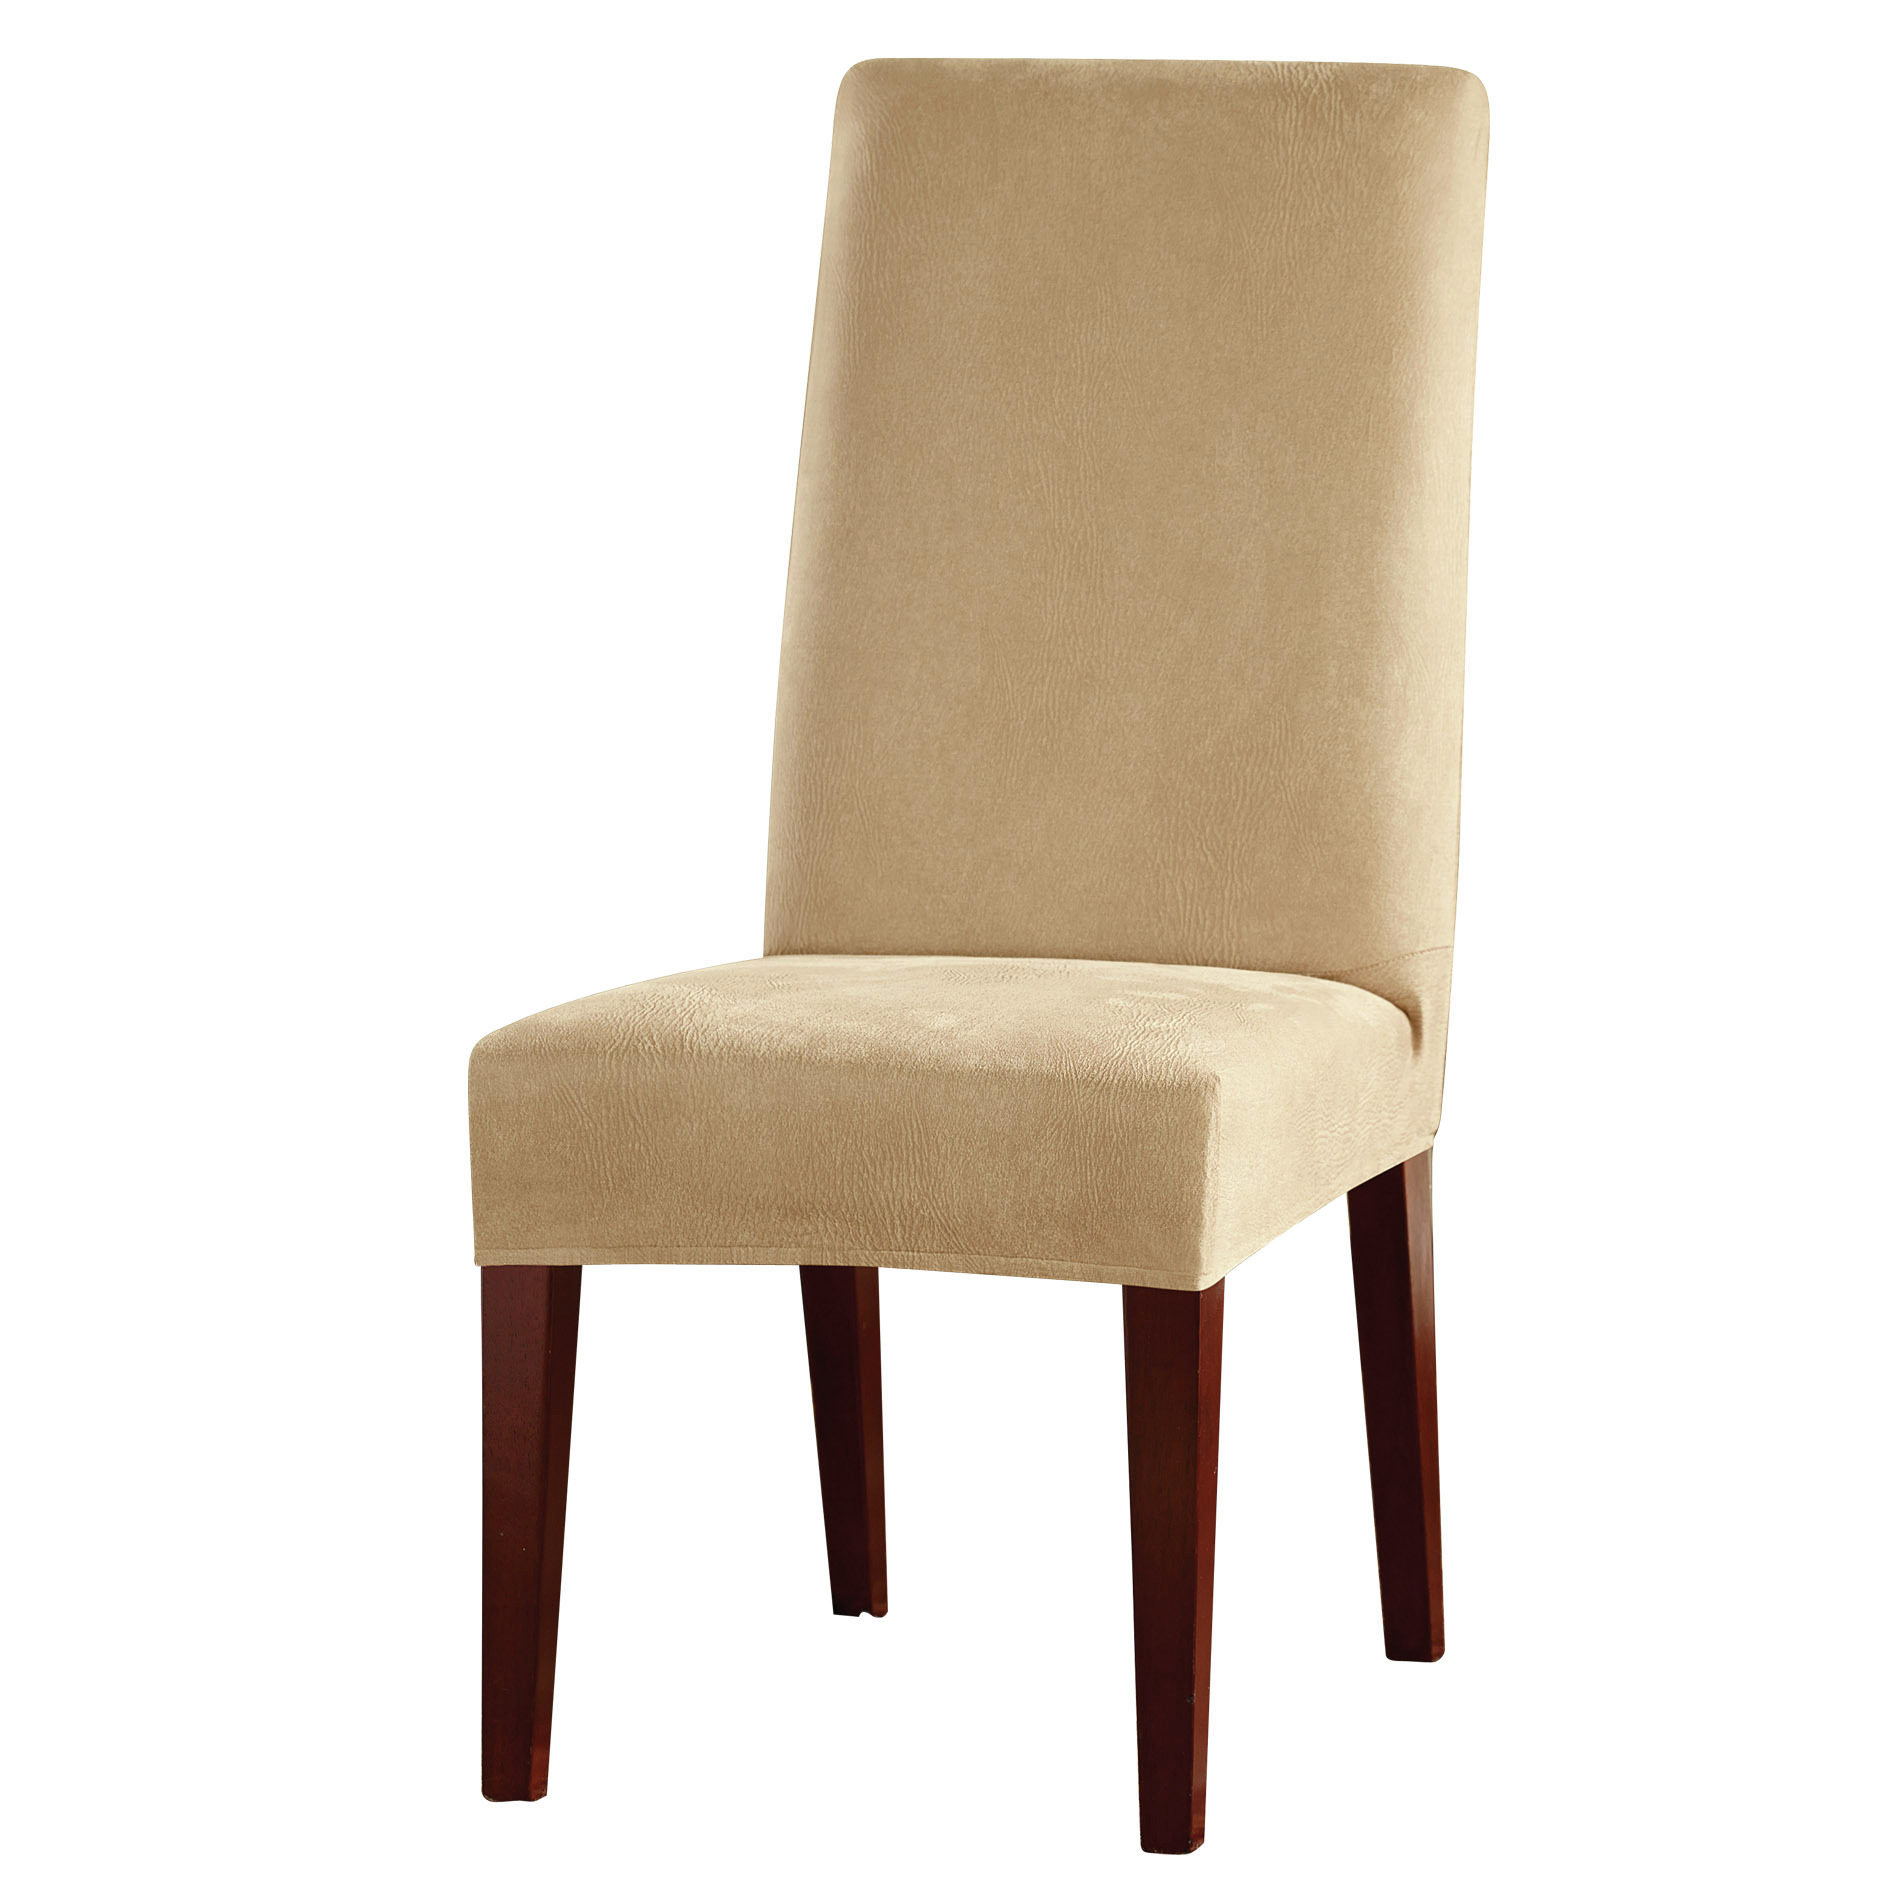 Kmart Dining Chairs Sure Fit Stretch Leather Short Dining Room Chair Camel